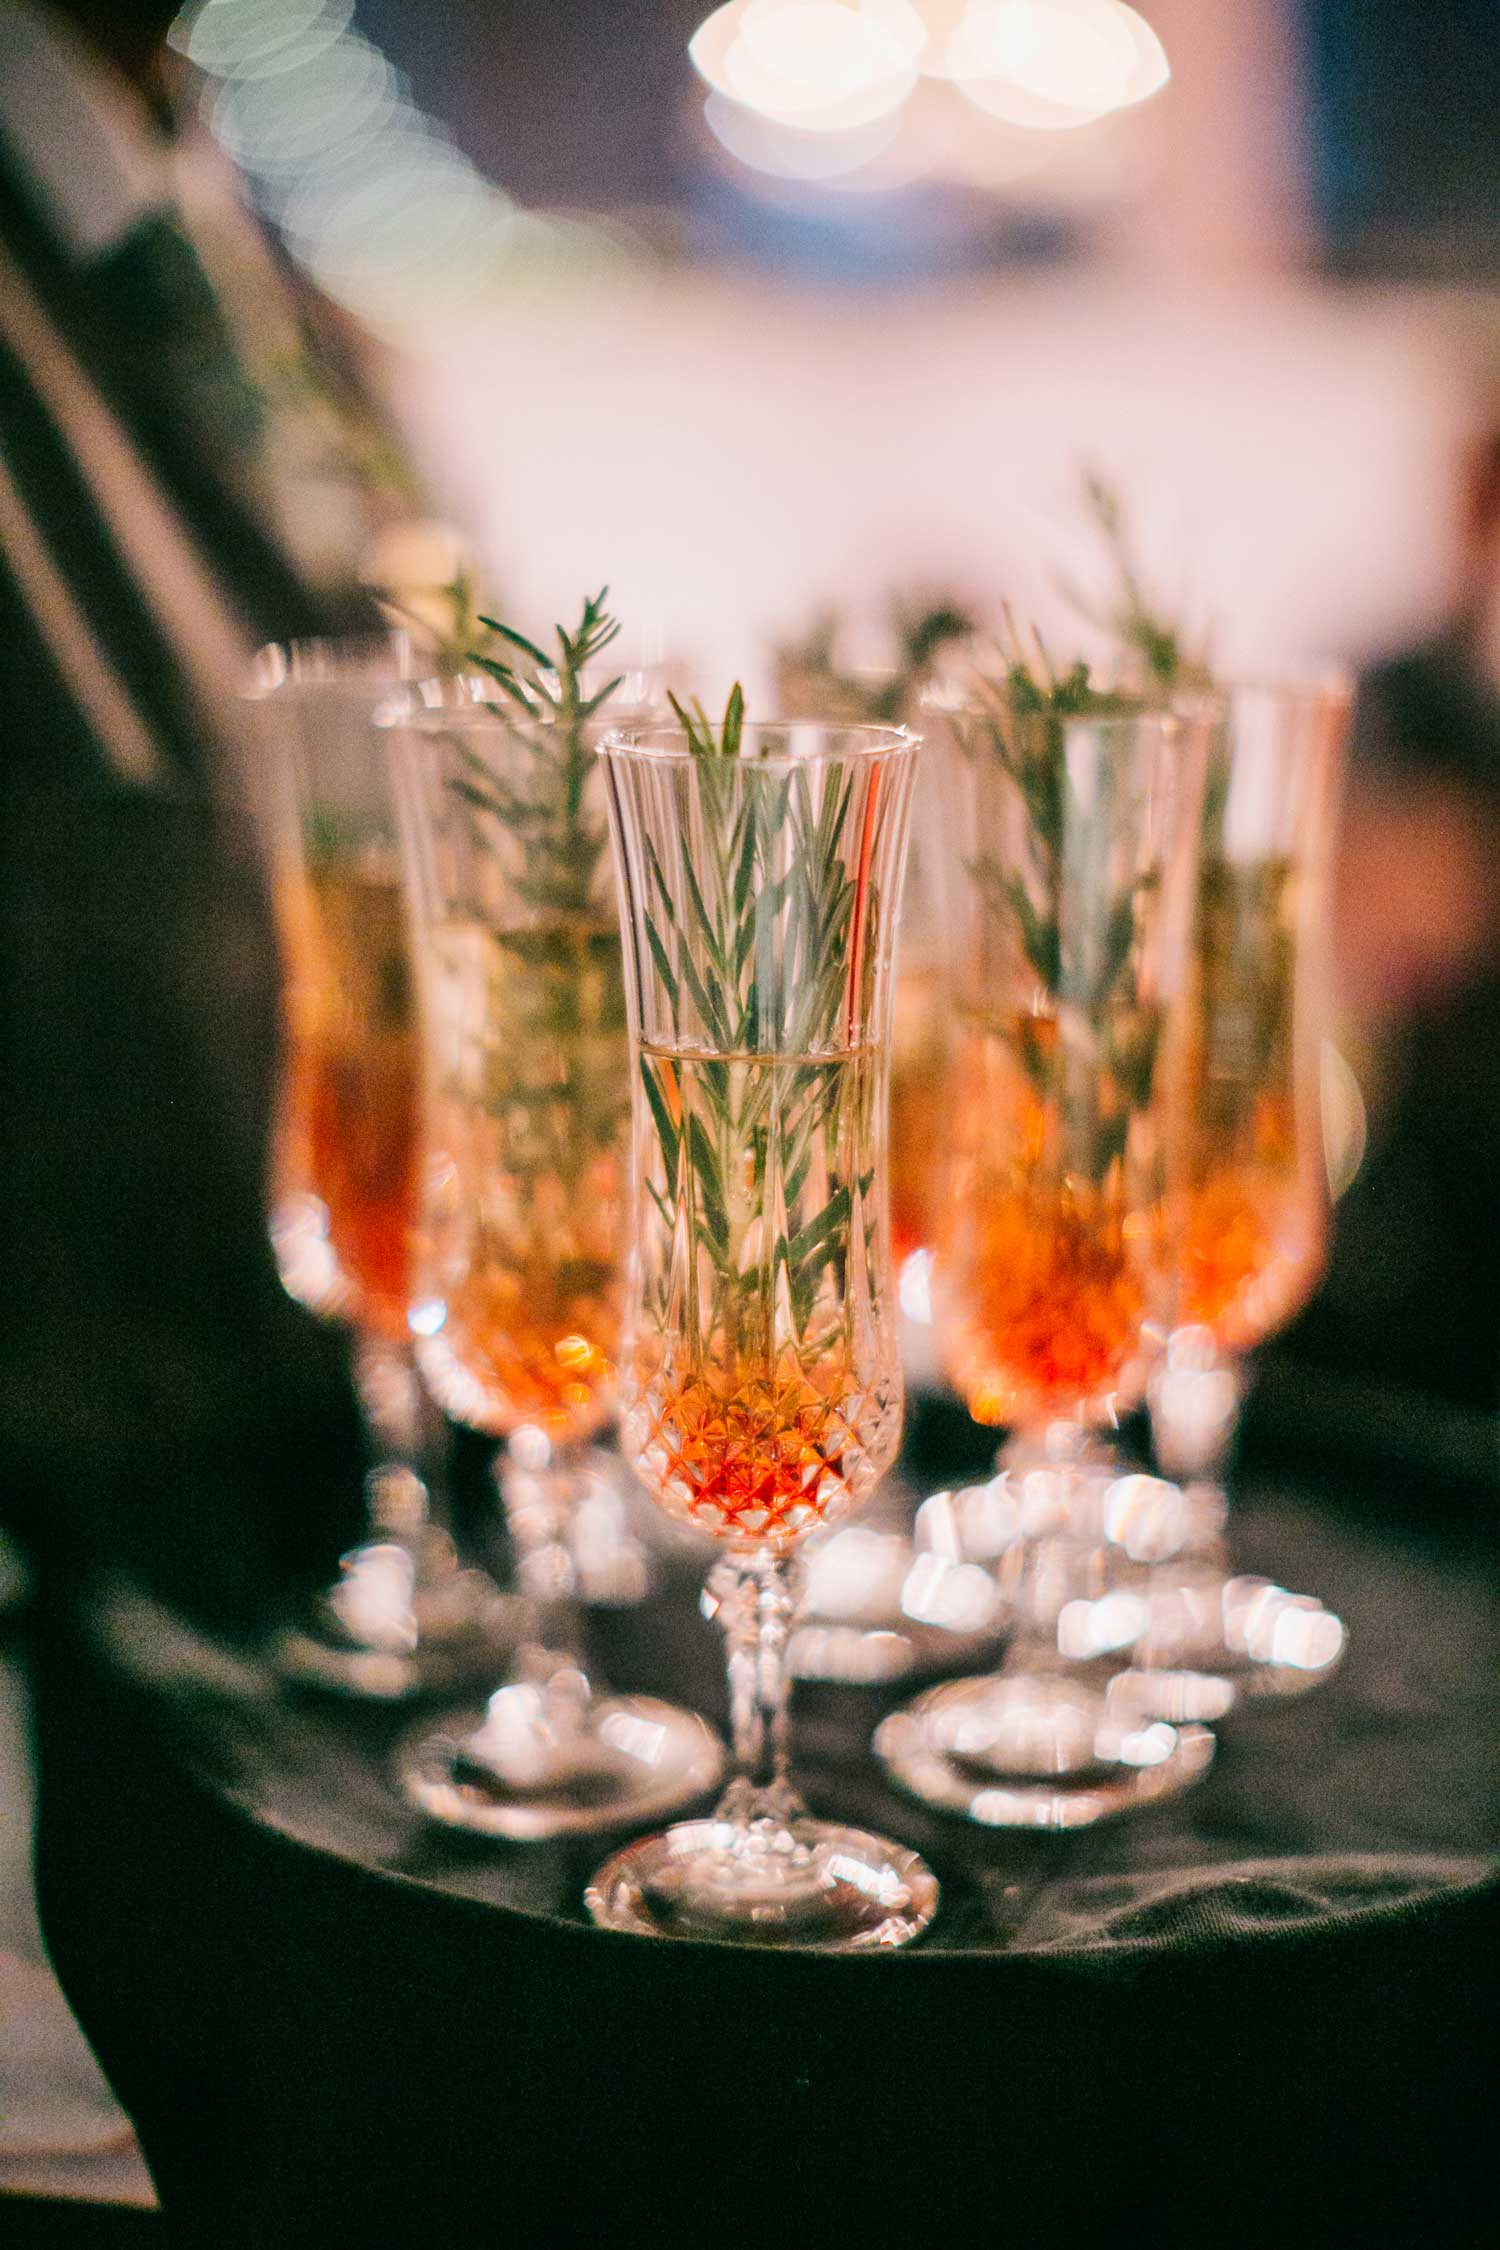 holiday wedding ideas decor champagne flute with fresh rosemary herb